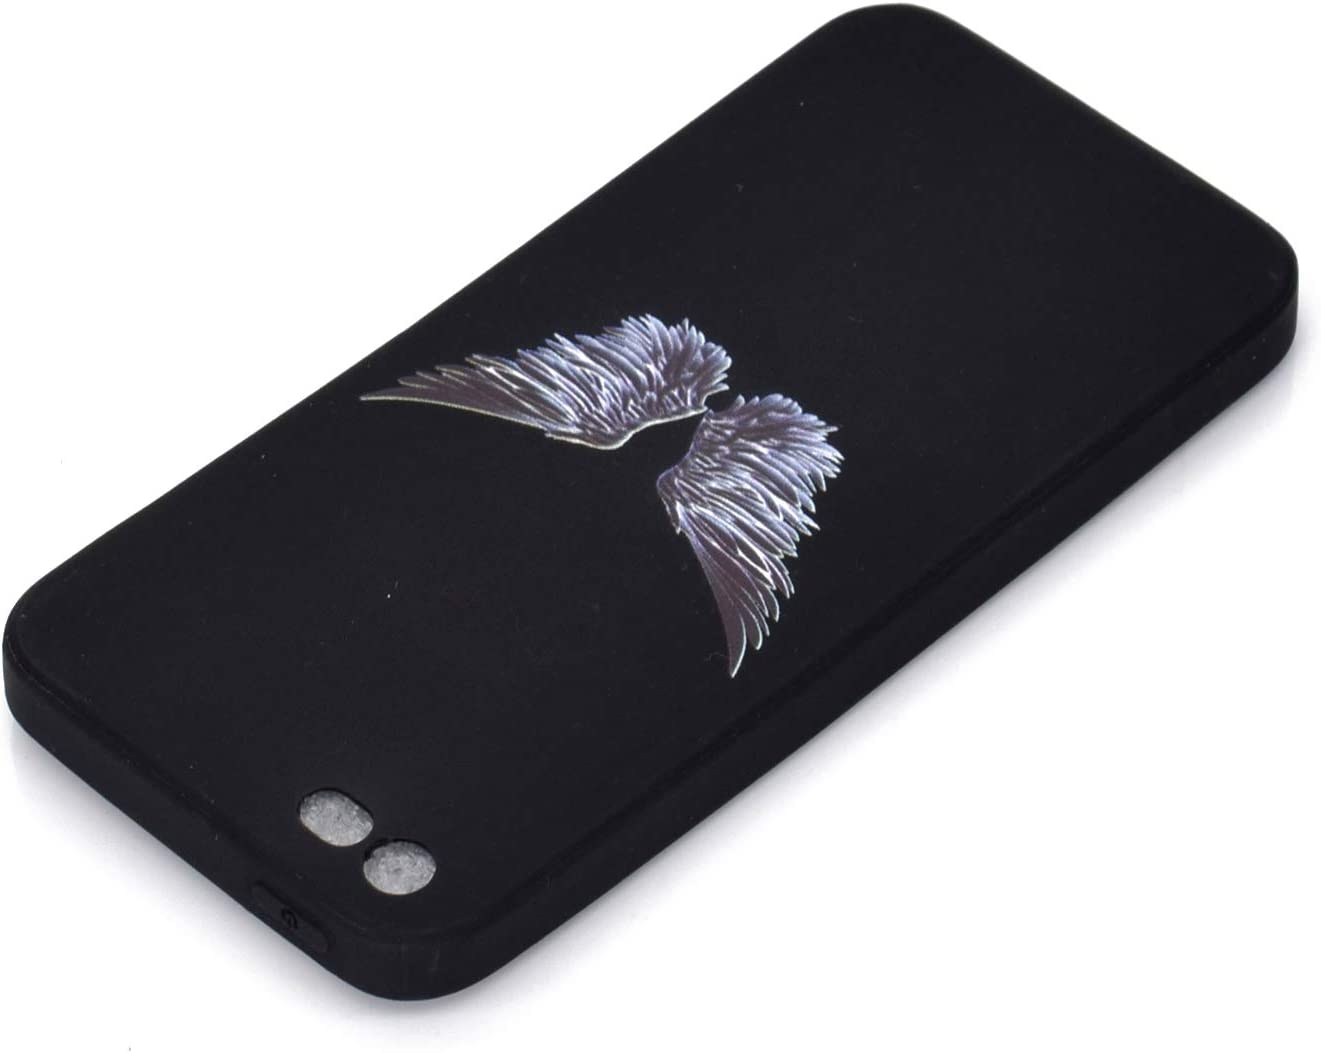 Girlyard Silicone Black Case for iPhone 6 Plus with Screen Protector,Slim Fit Rubber Gel Shock-Absorption Bumper Soft TPU Phone Case Creative Unique Design Back Cover for iPhone 6S Plus